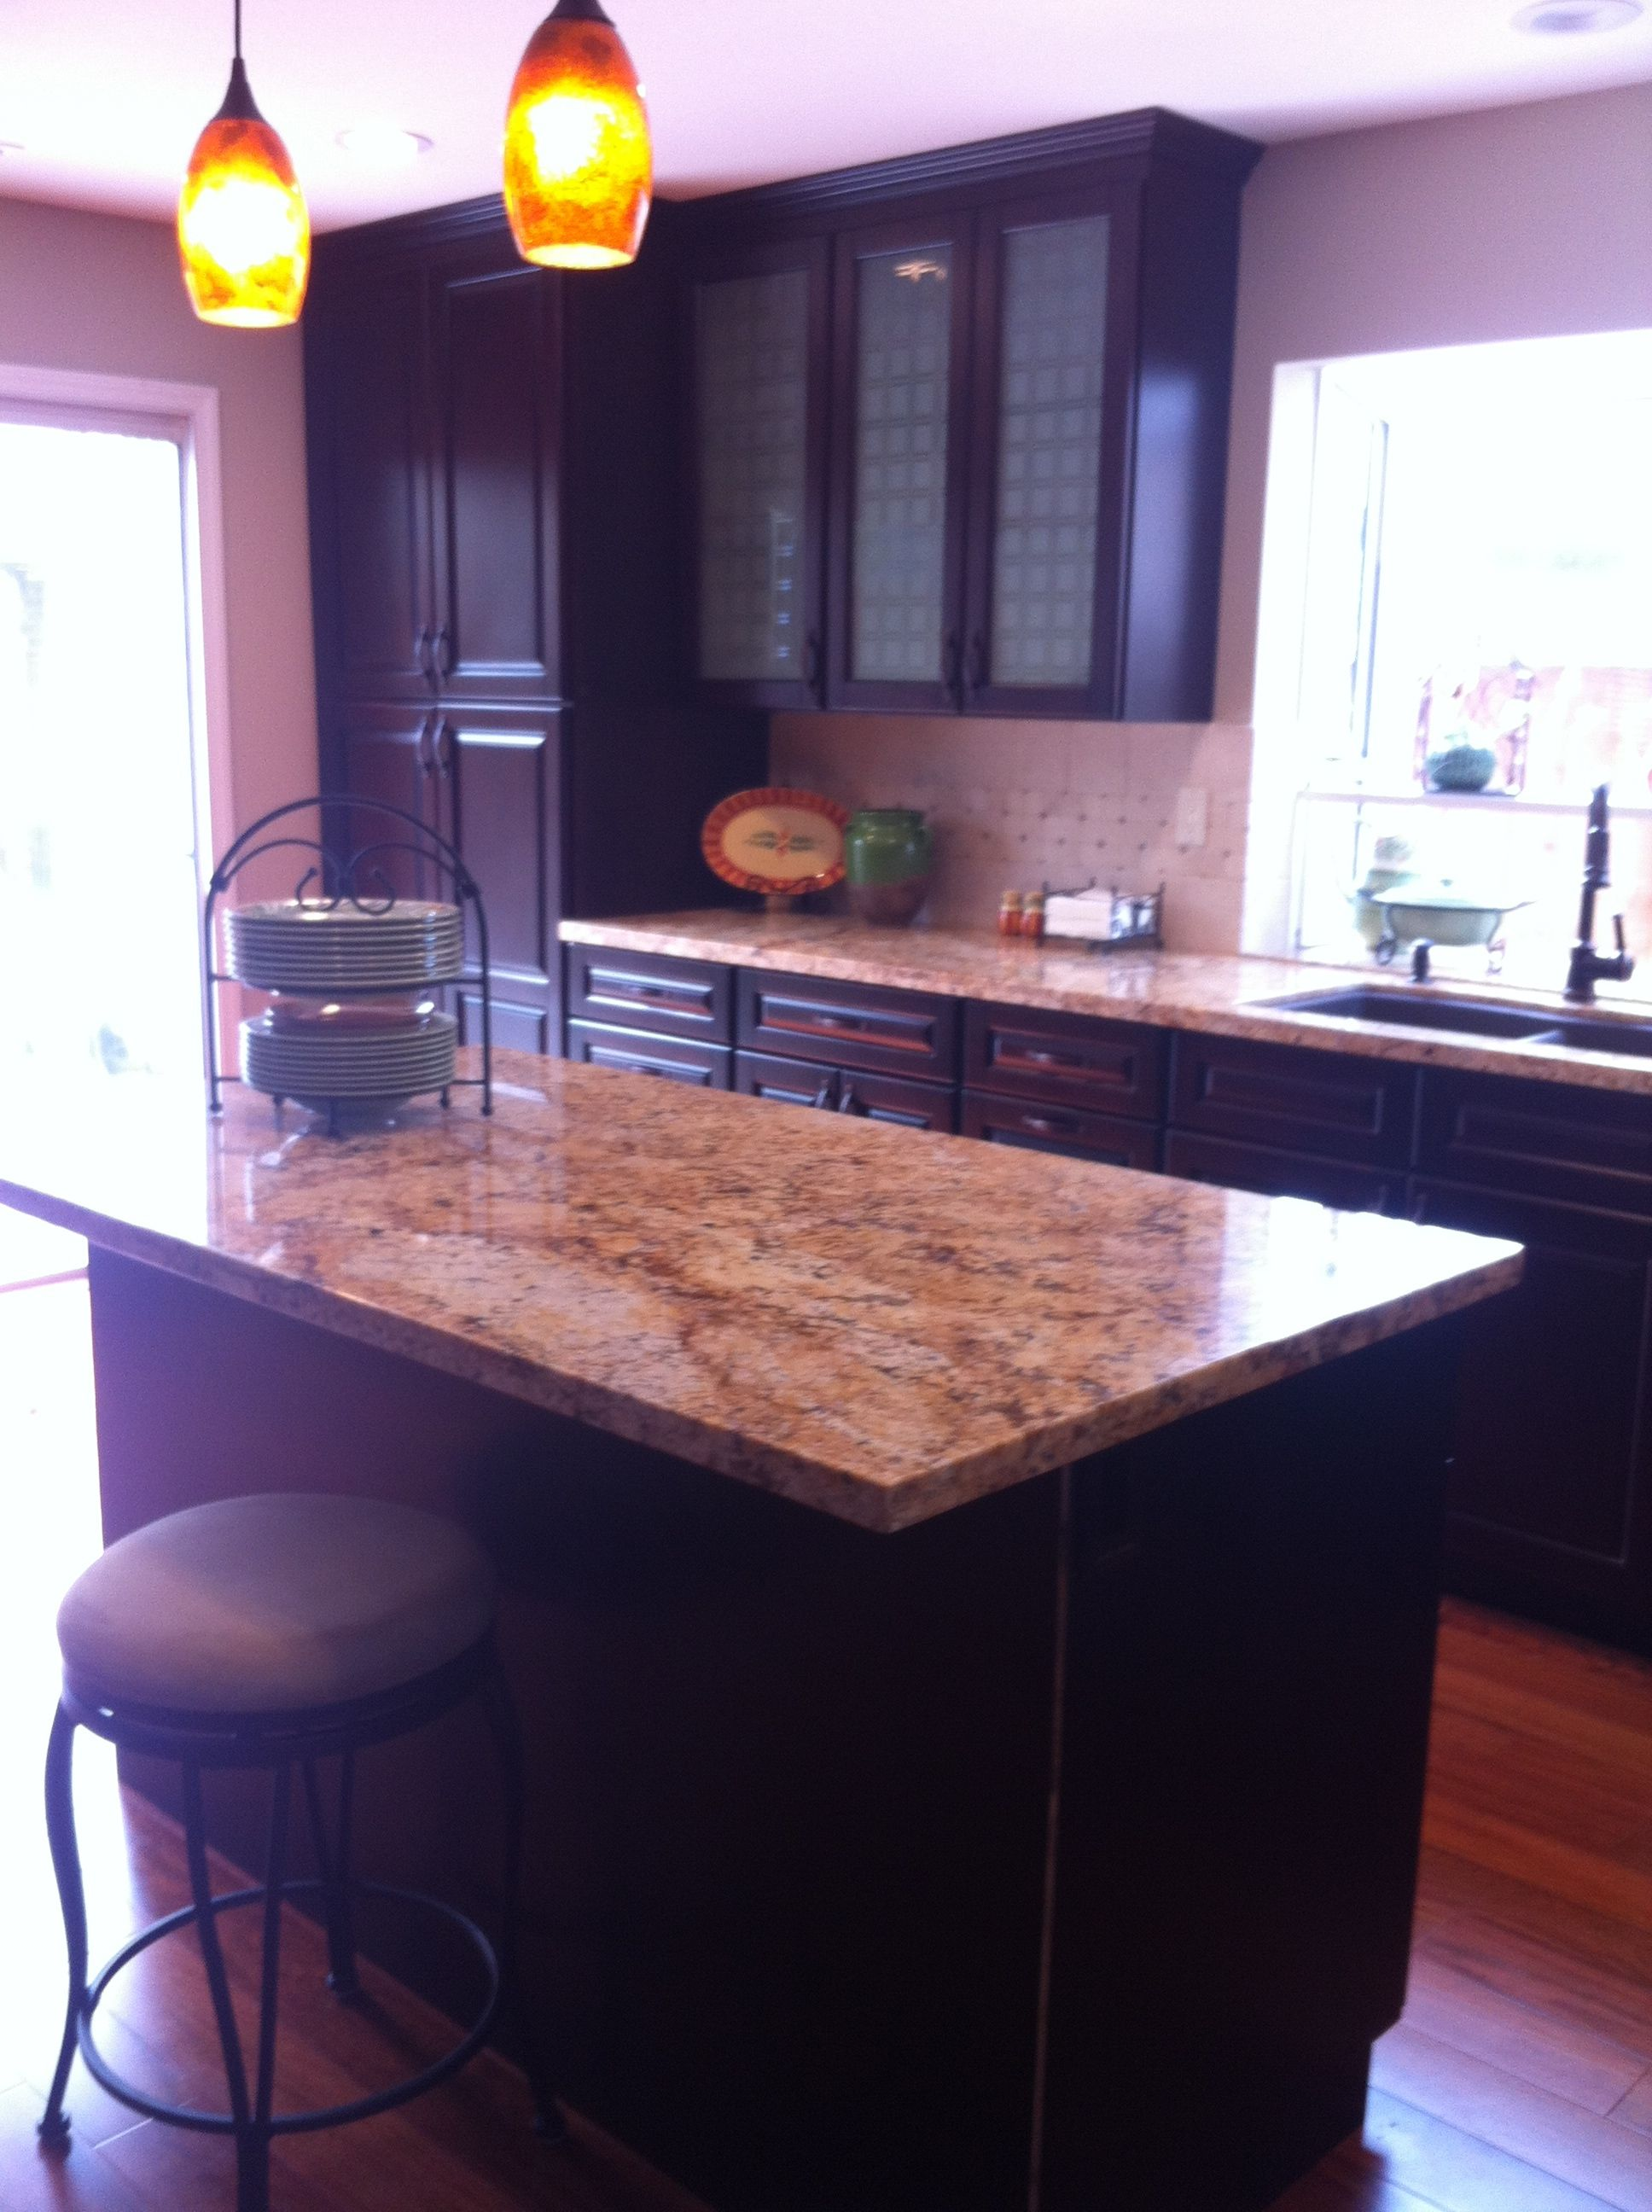 Golden Persa Granite From Brazil Kz Kitchen Cabinets In American Cherry Villa Style